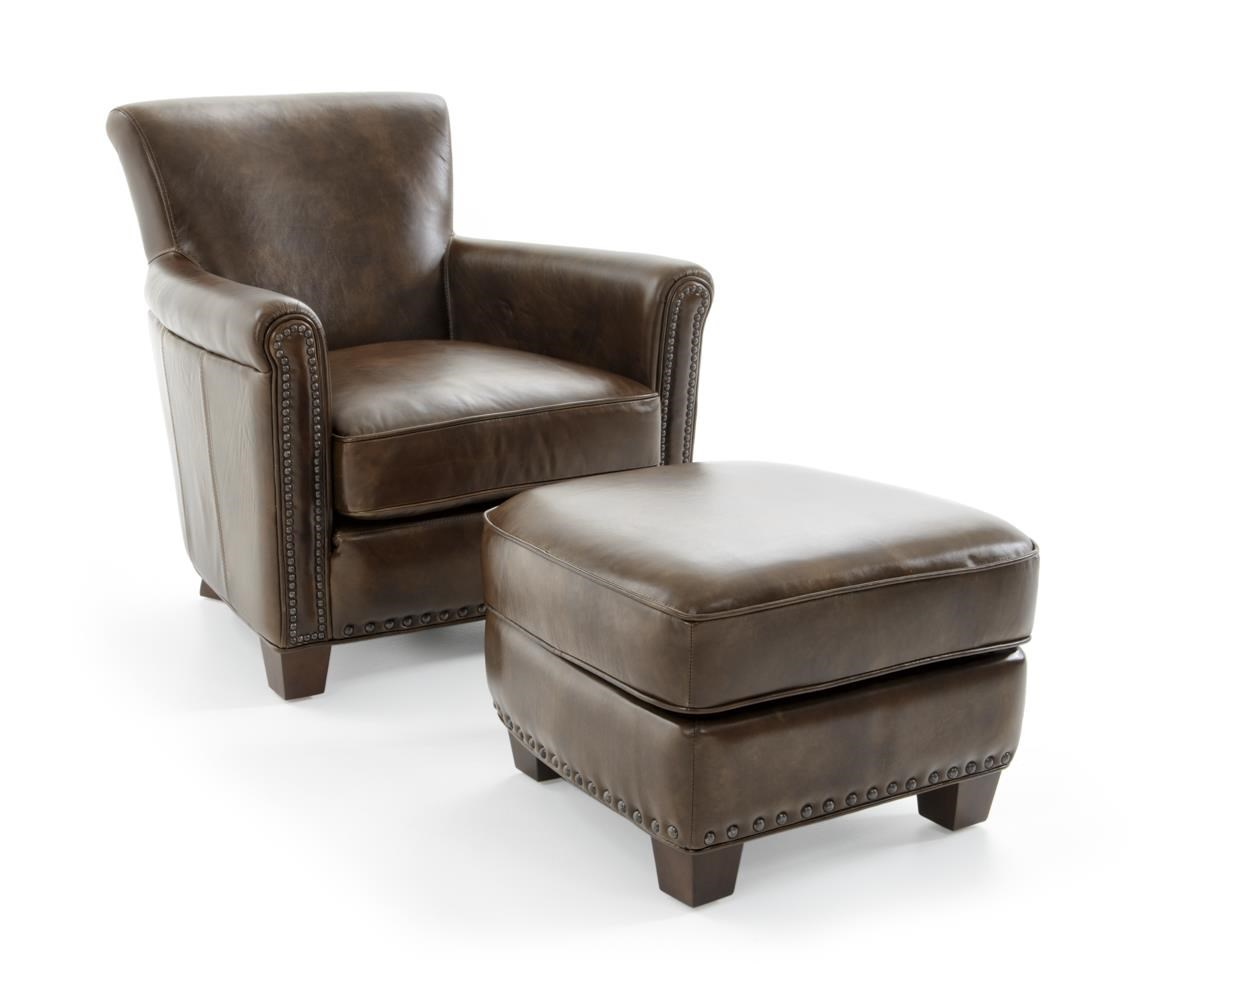 Futura Leather 6307 Chair and Ottoman Set - Item Number: 6307-10N +6307-63N 2079F EPIC